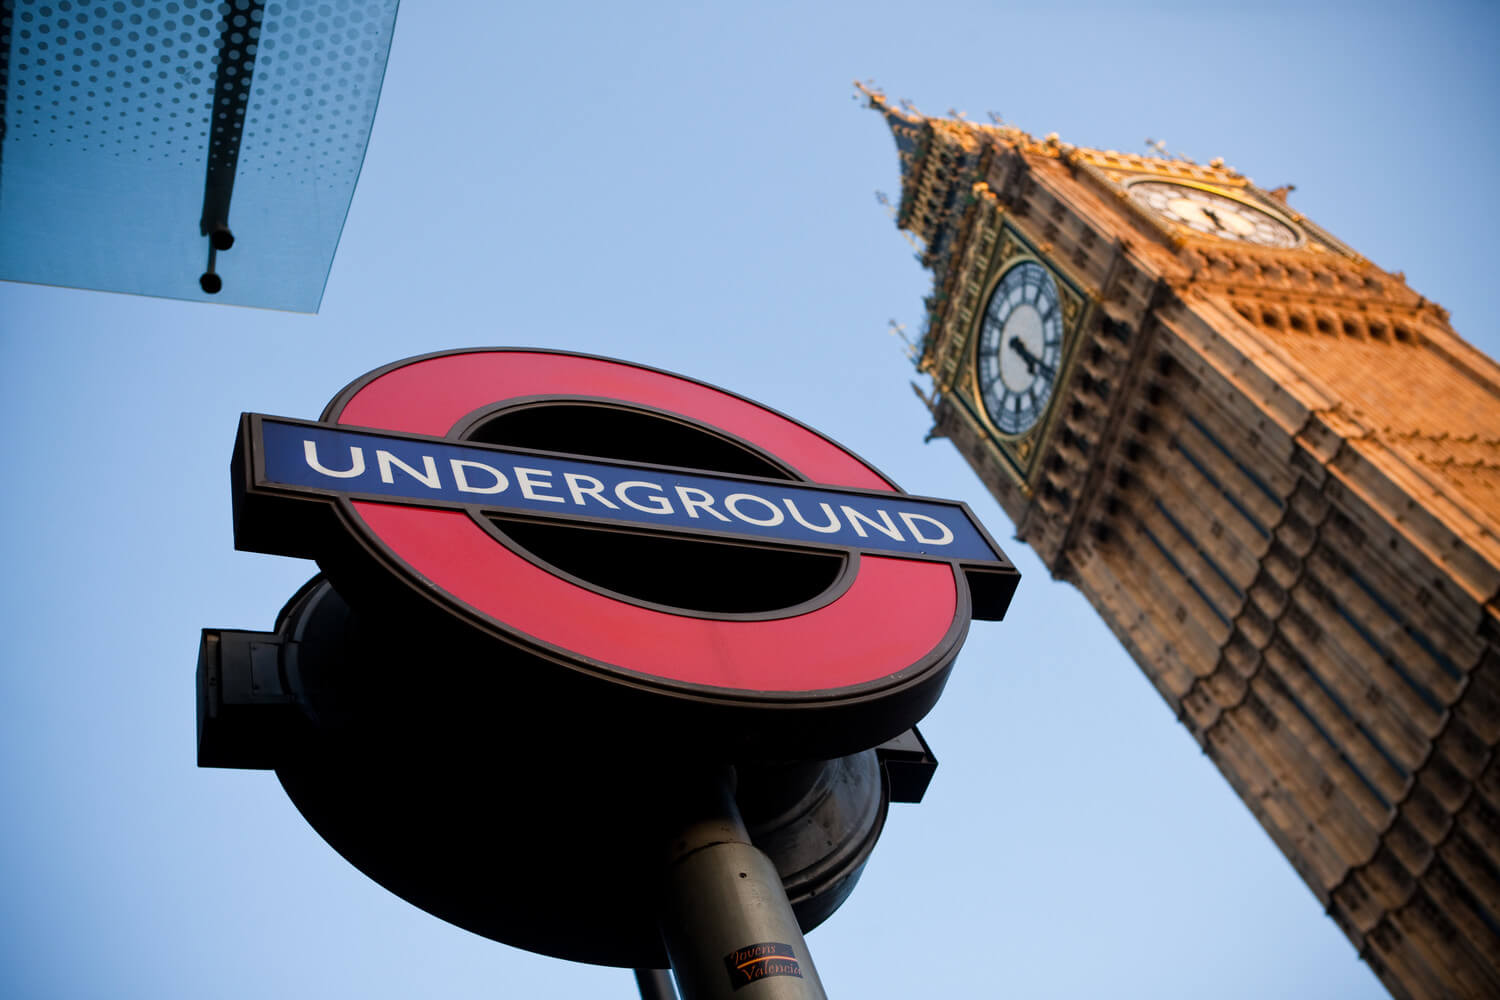 The London underground sign and Big Ben